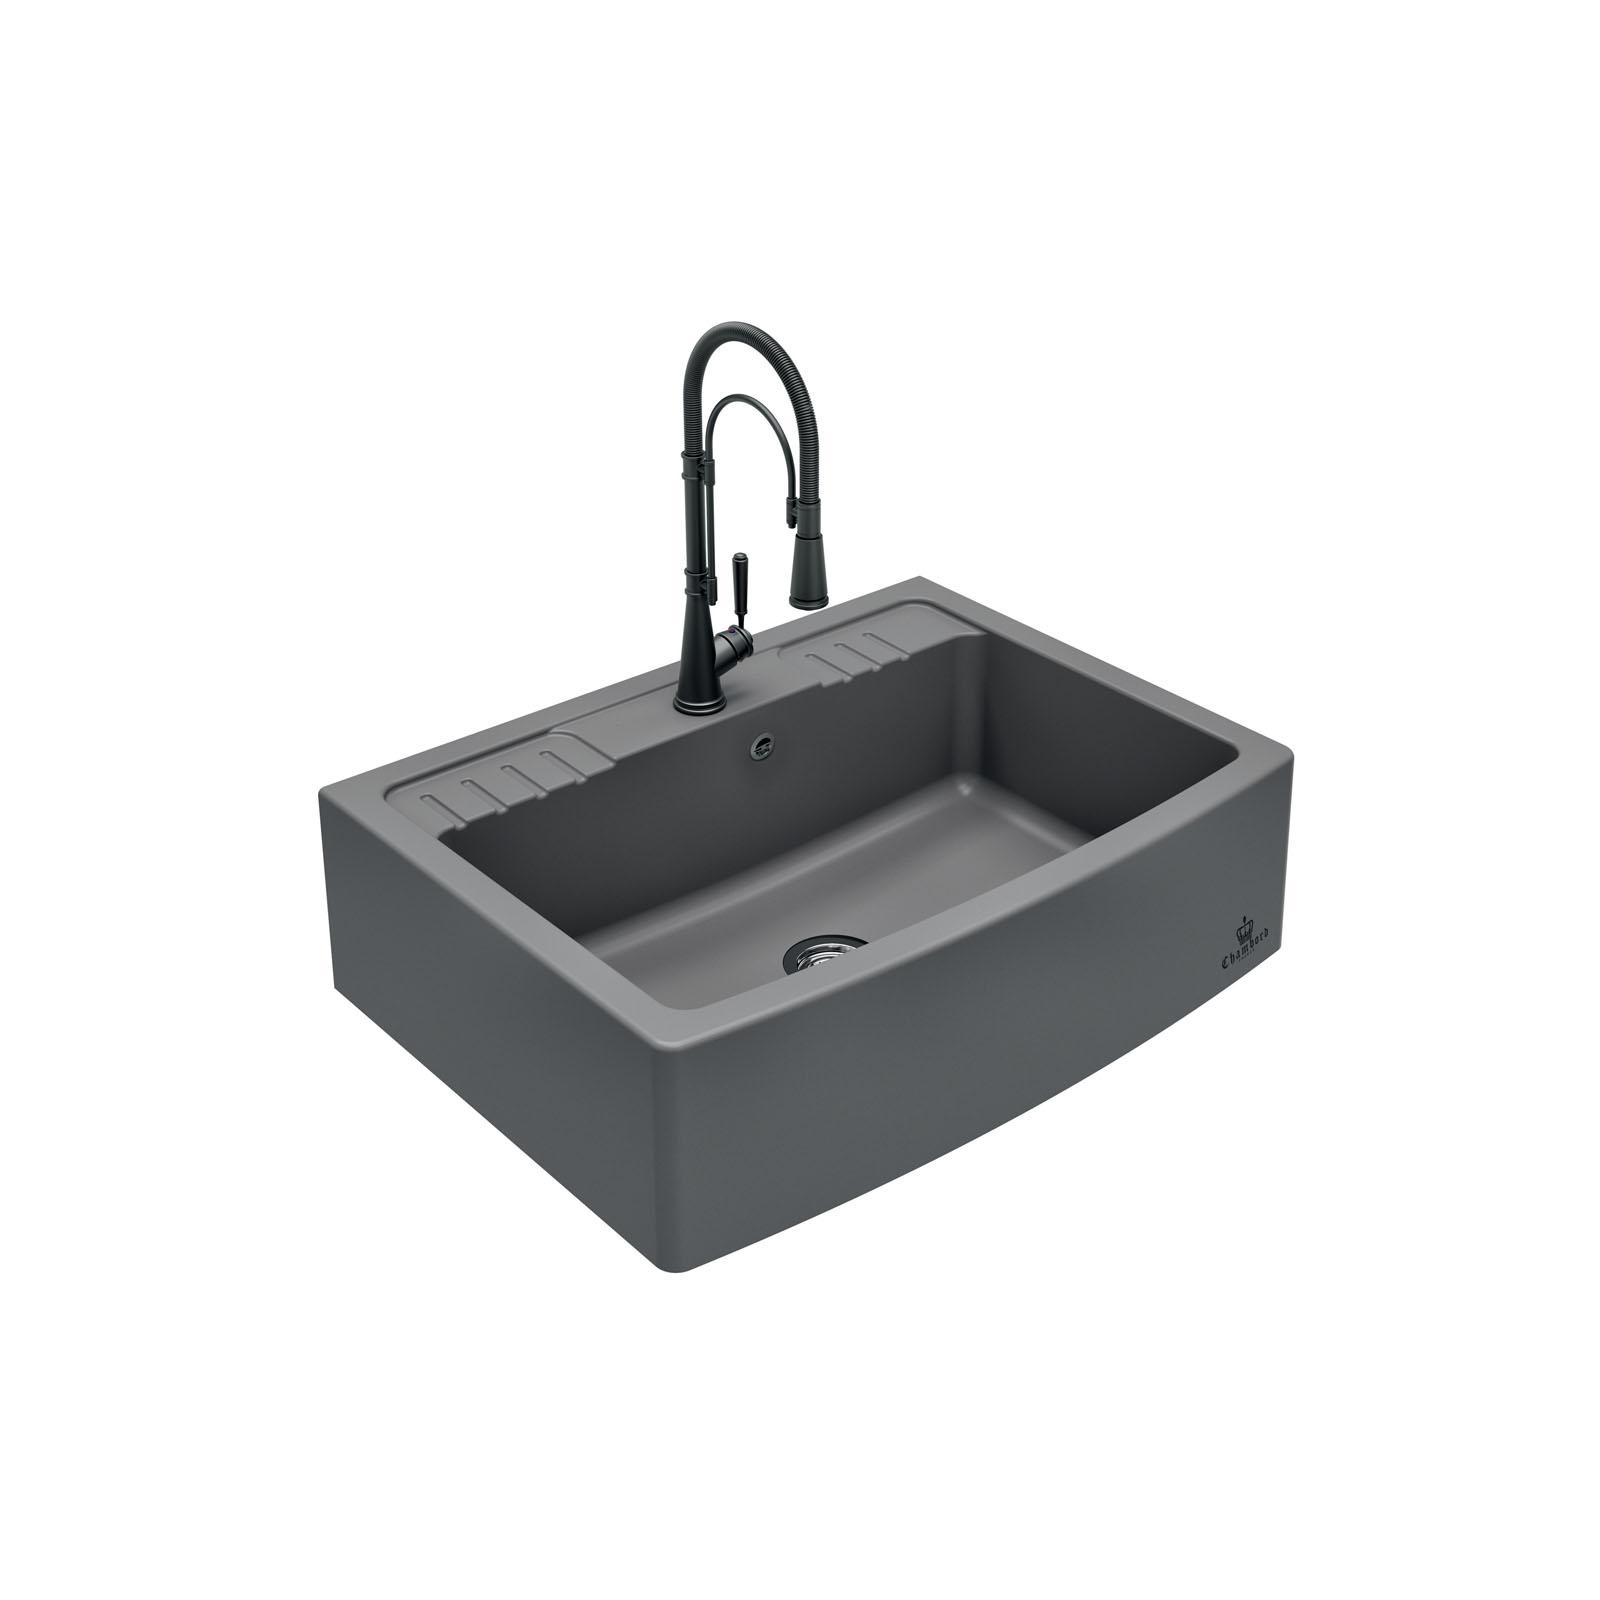 High-quality sink Clotaire IV granit titanium - one bowl